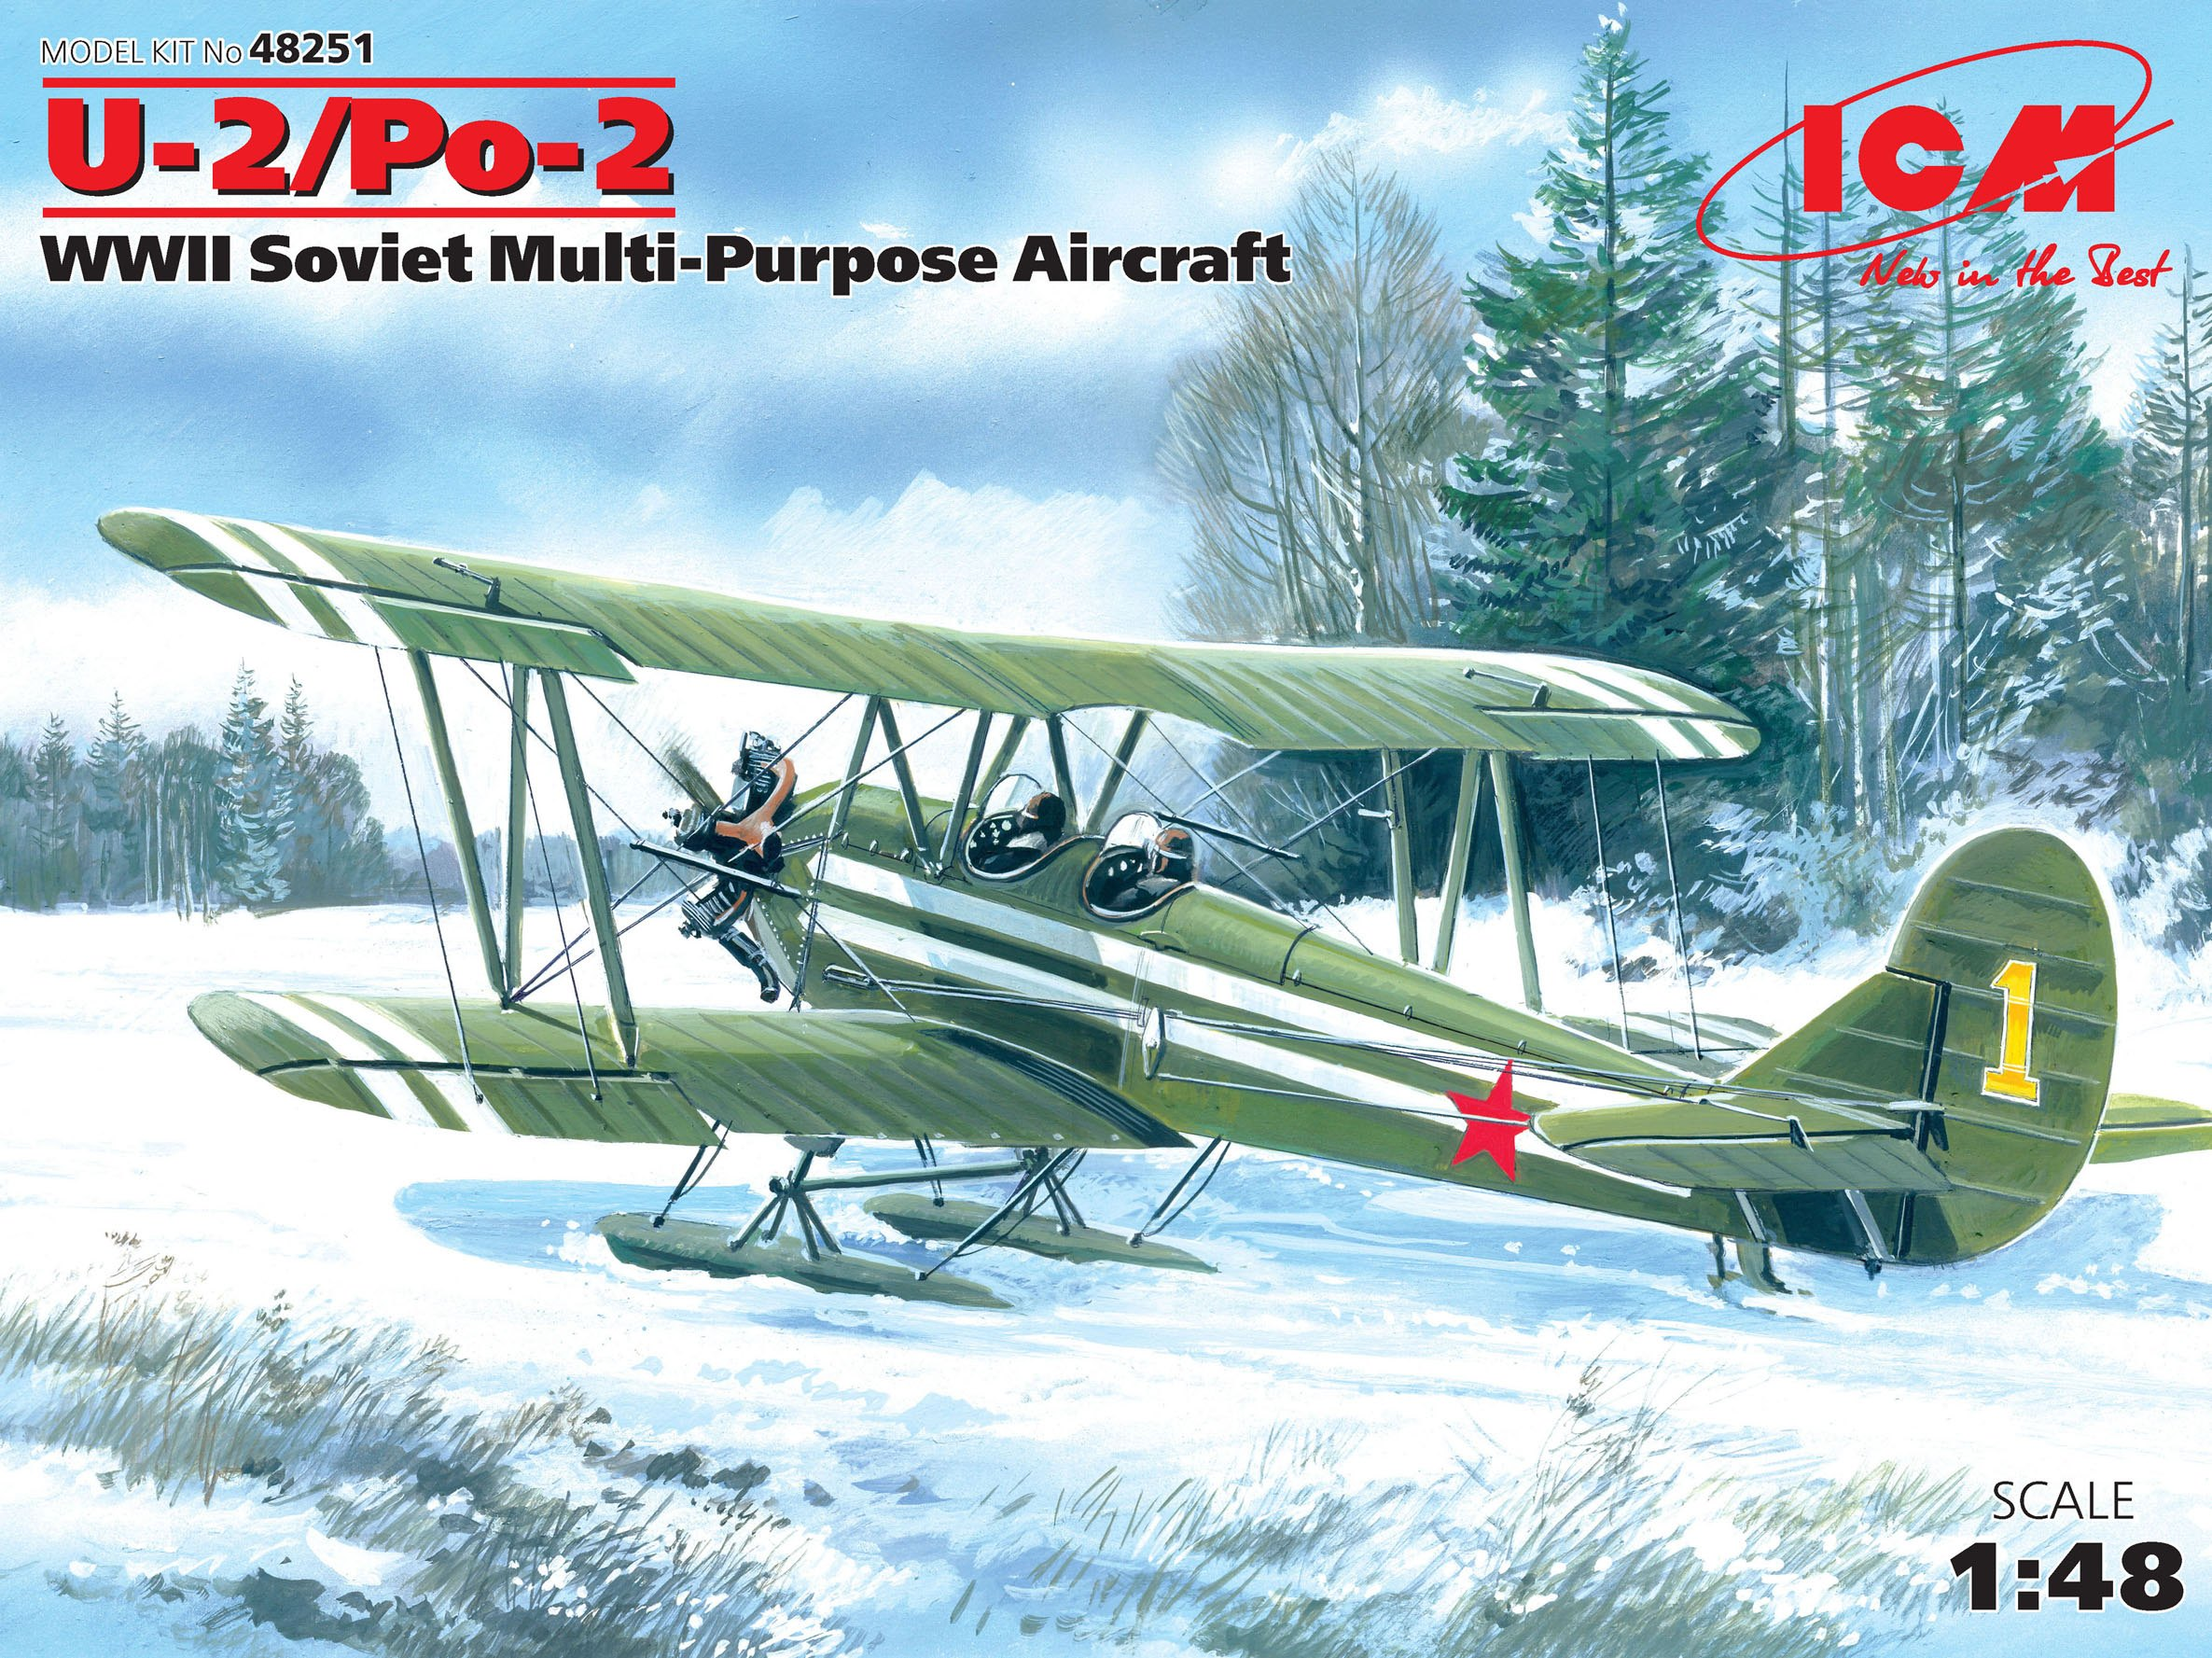 ICM U-2/Po-2, WWII Soviet Multi-Purpose Aircraft